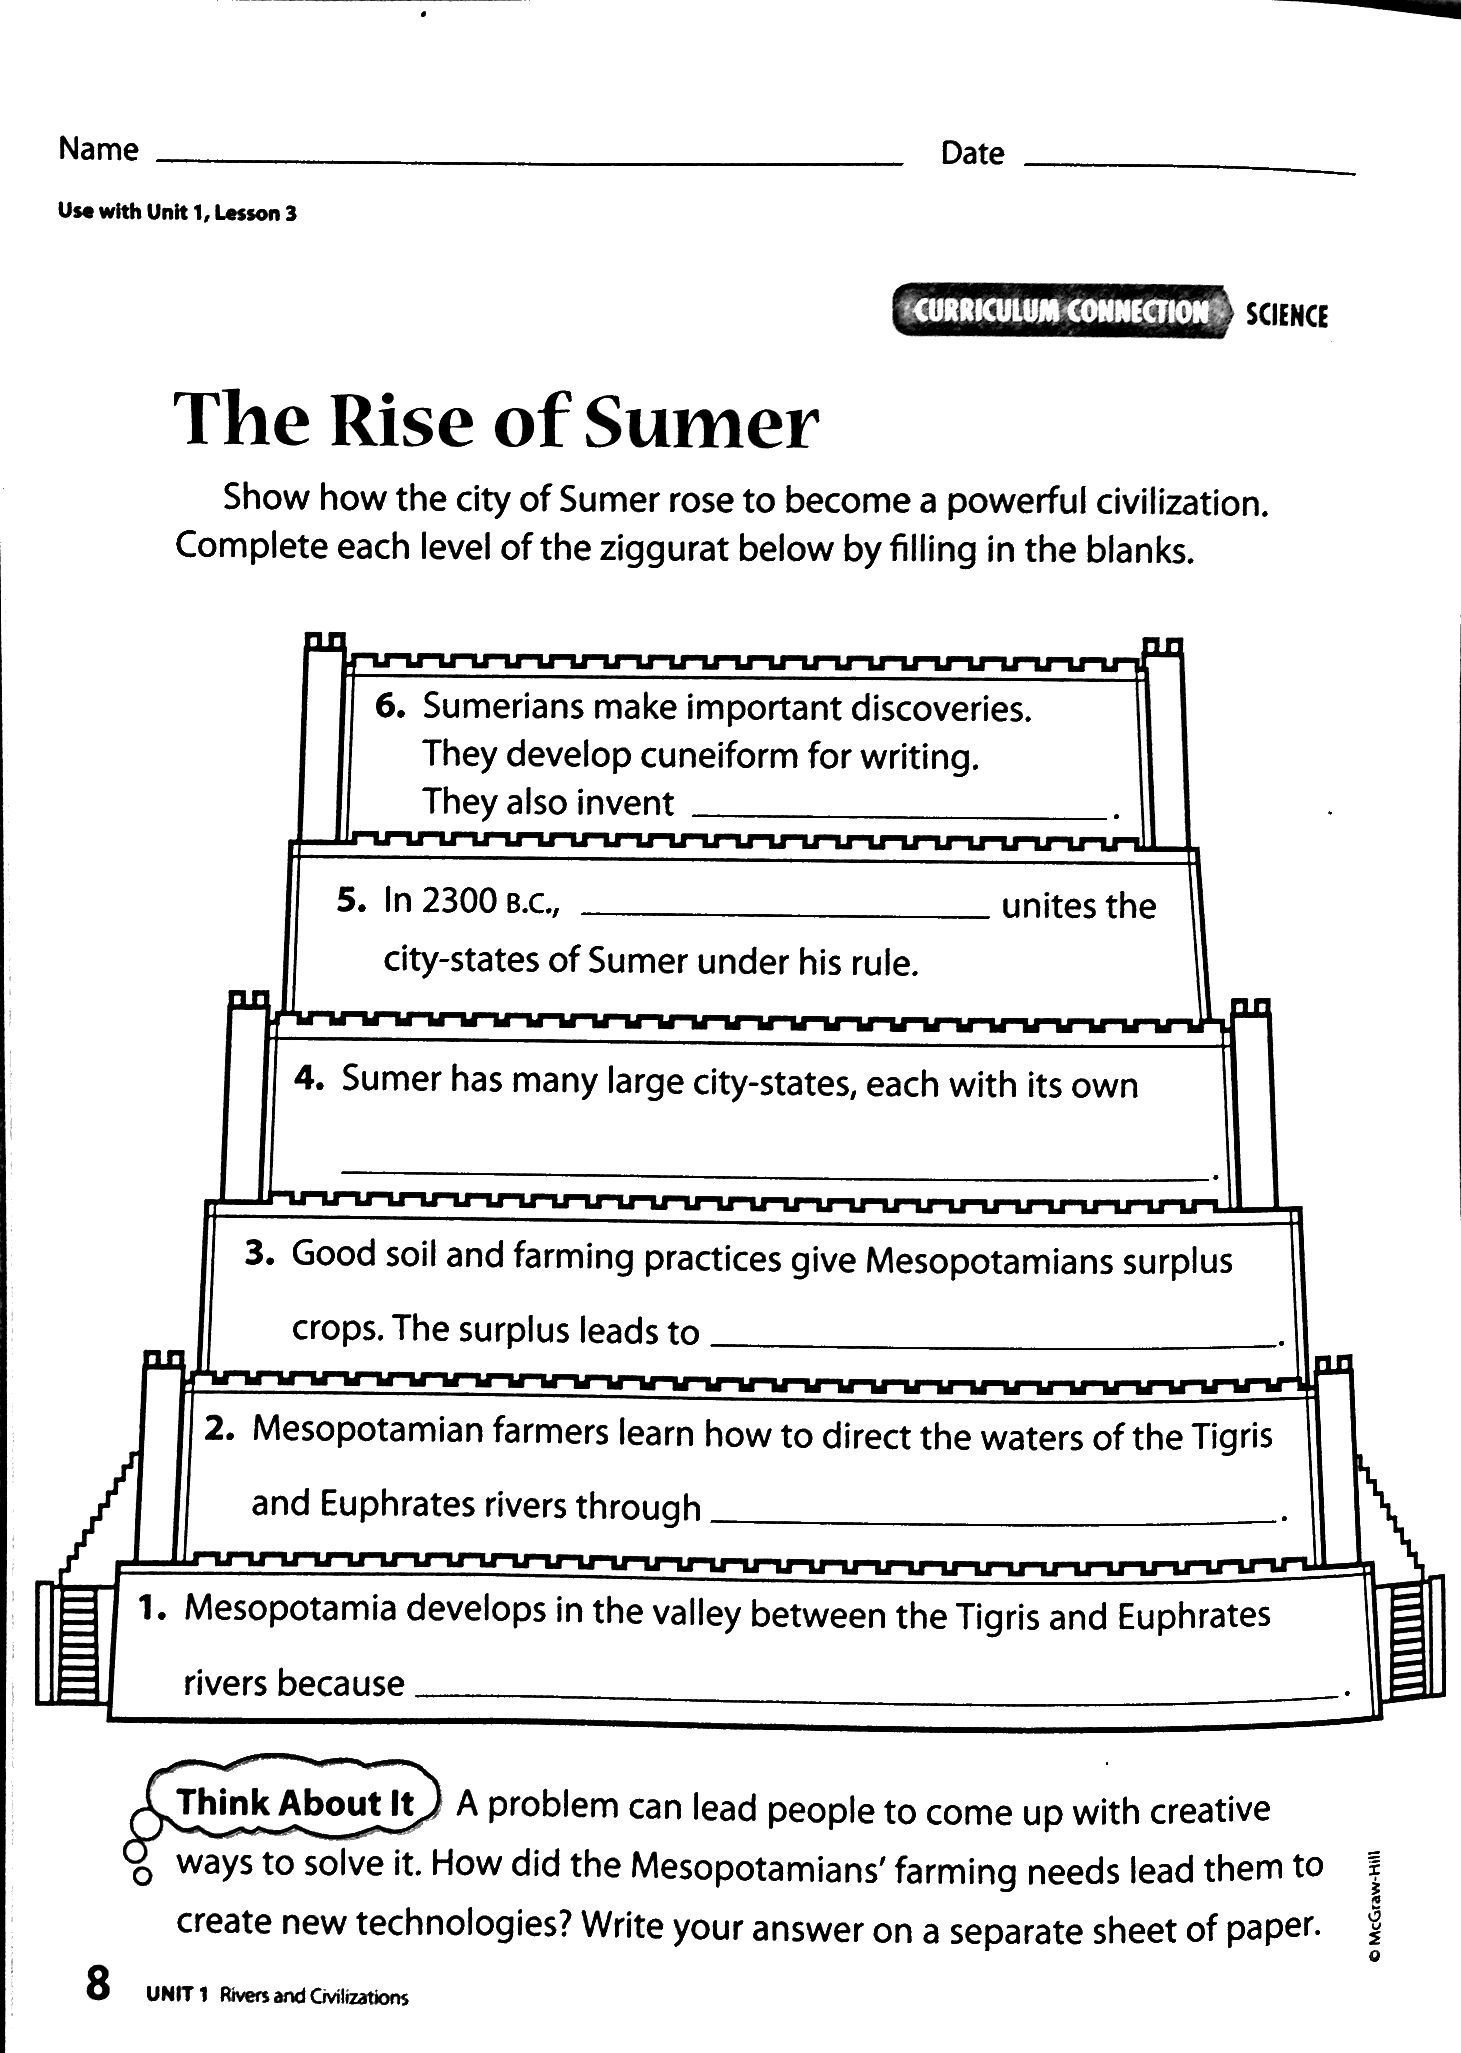 small resolution of the-rise-of-sumer.jpg 1